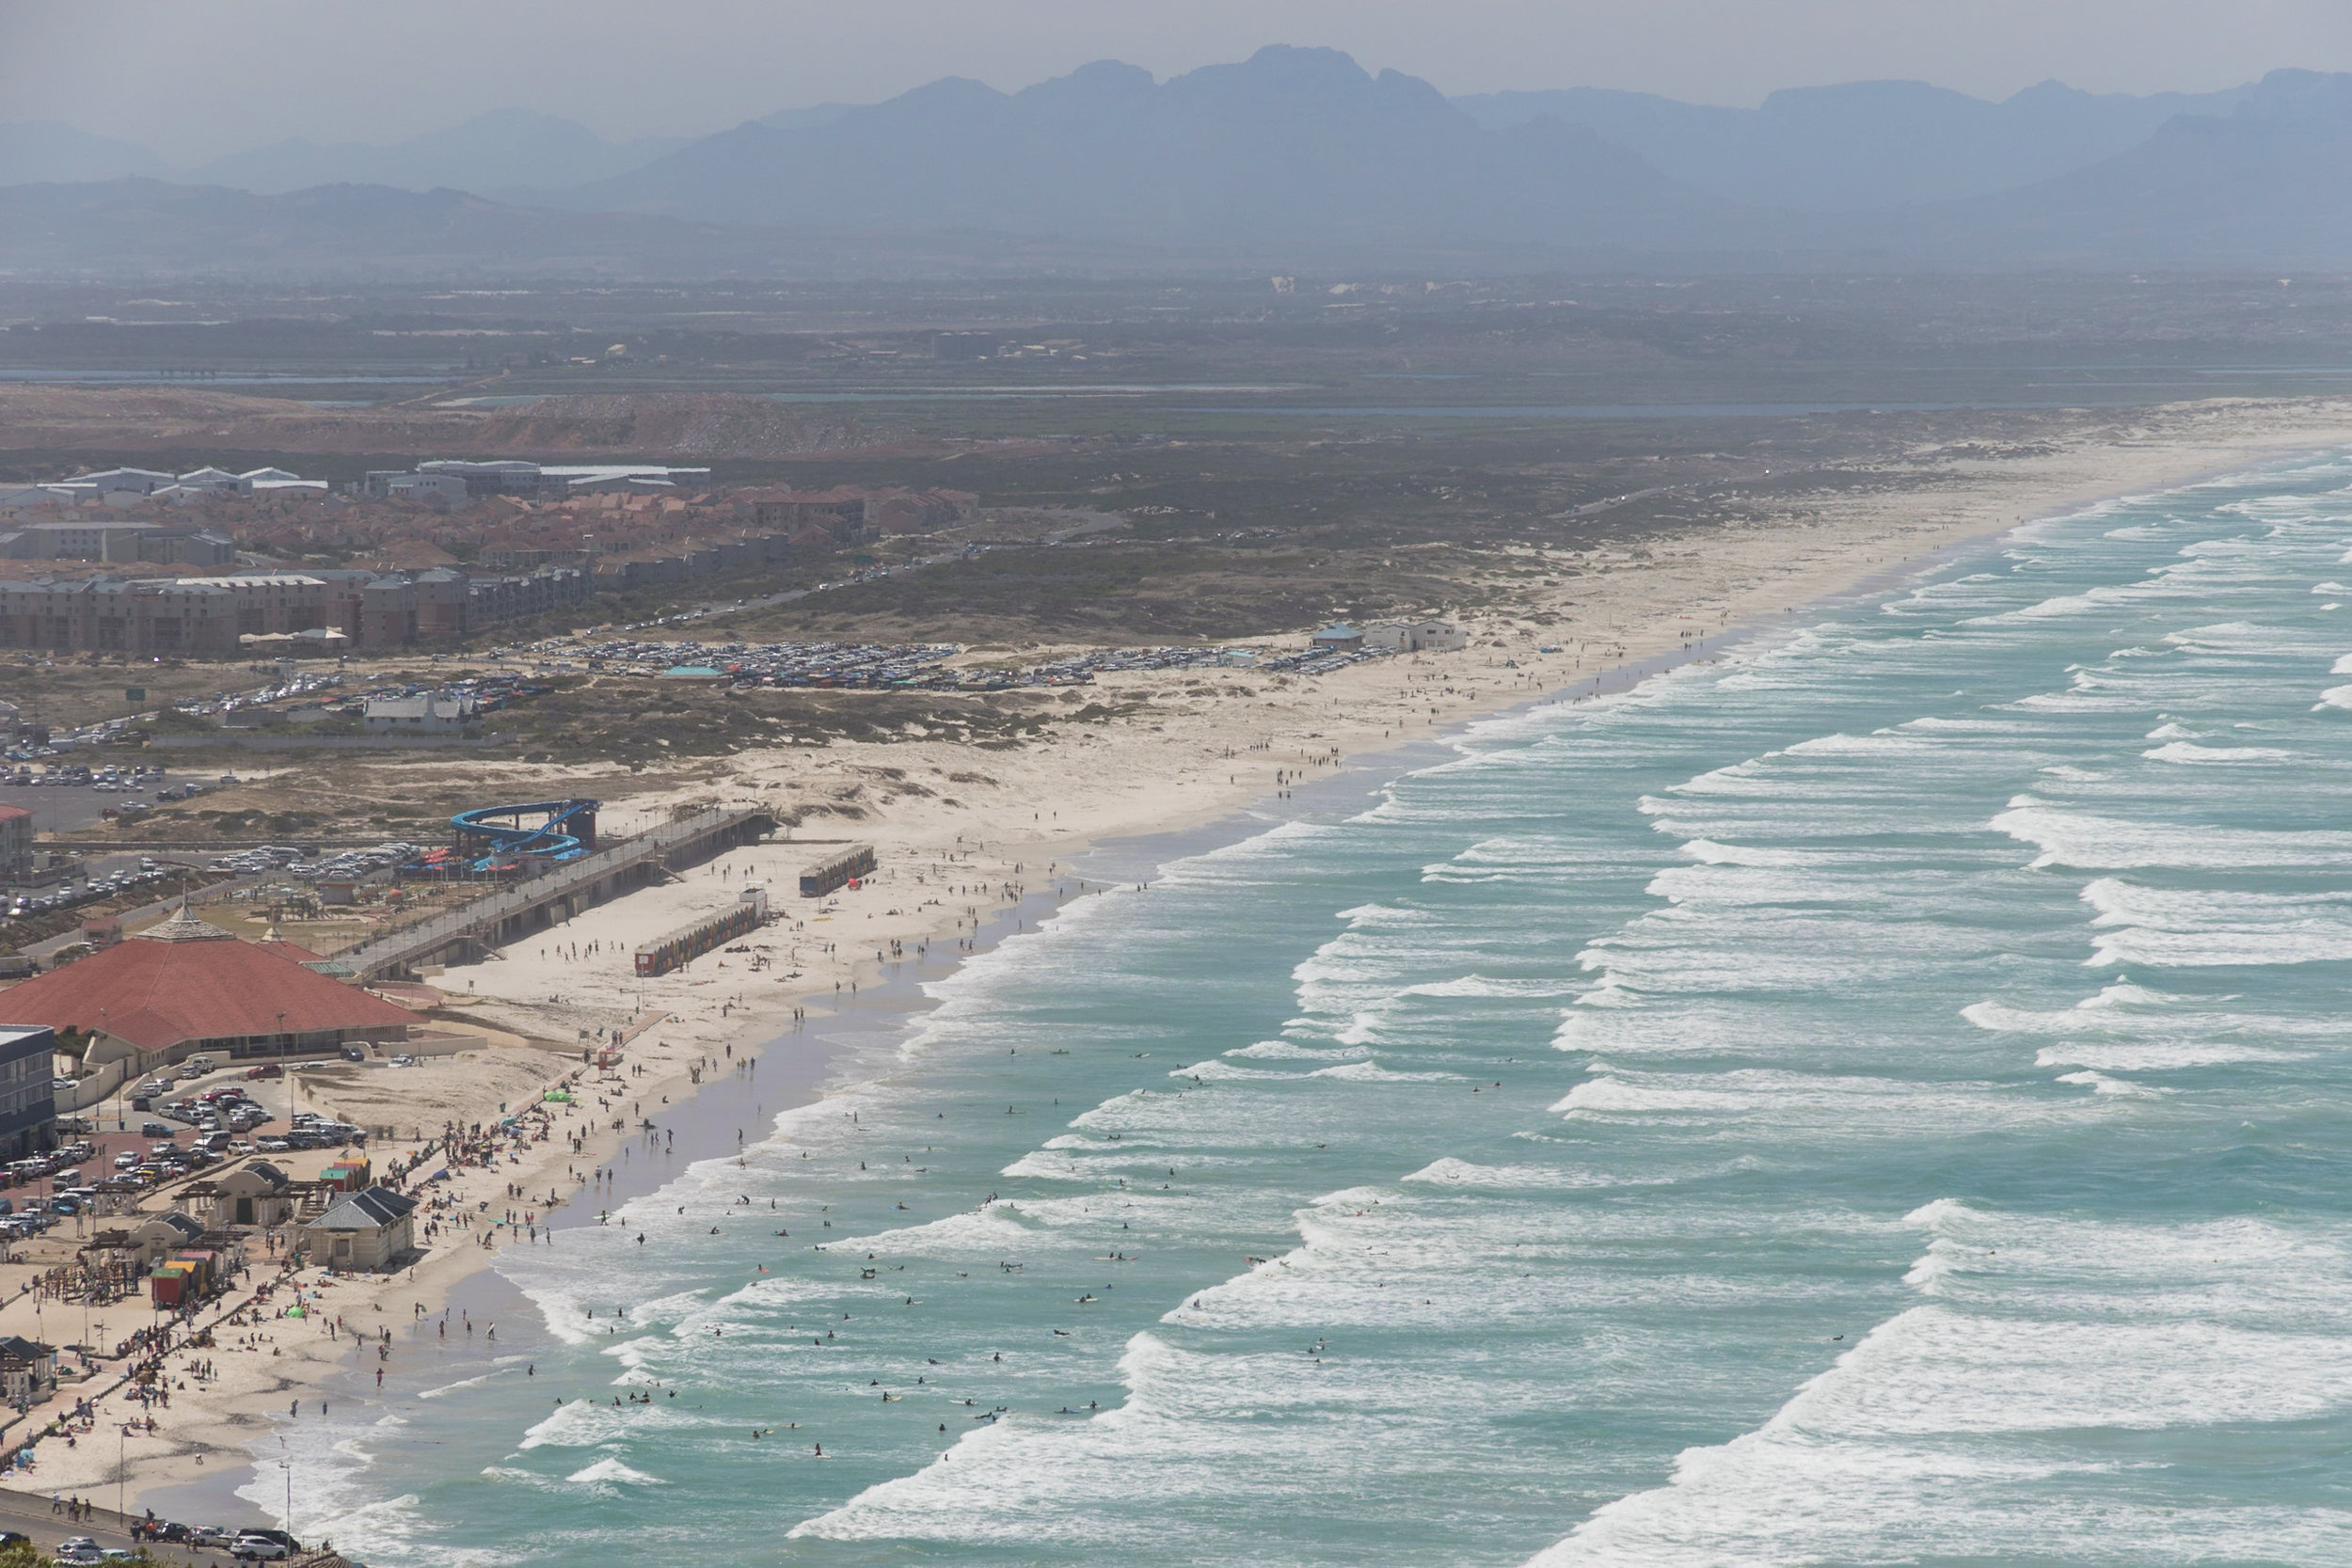 surf waves from a beach in south africa viewed from above